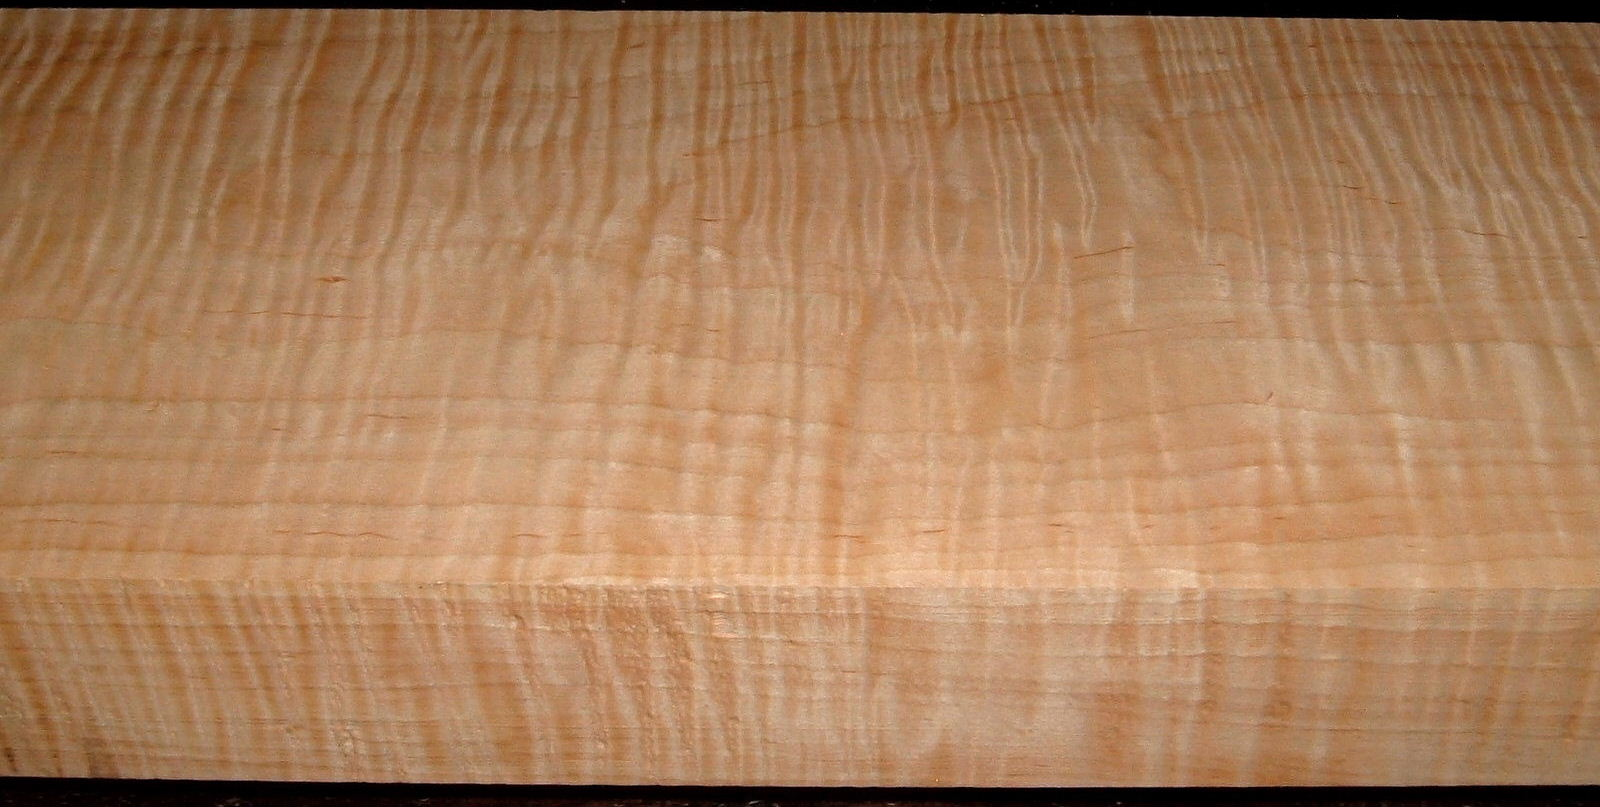 M2008-699, 2-11/16x9-3/8x82, 12/4 Curly Tiger Maple